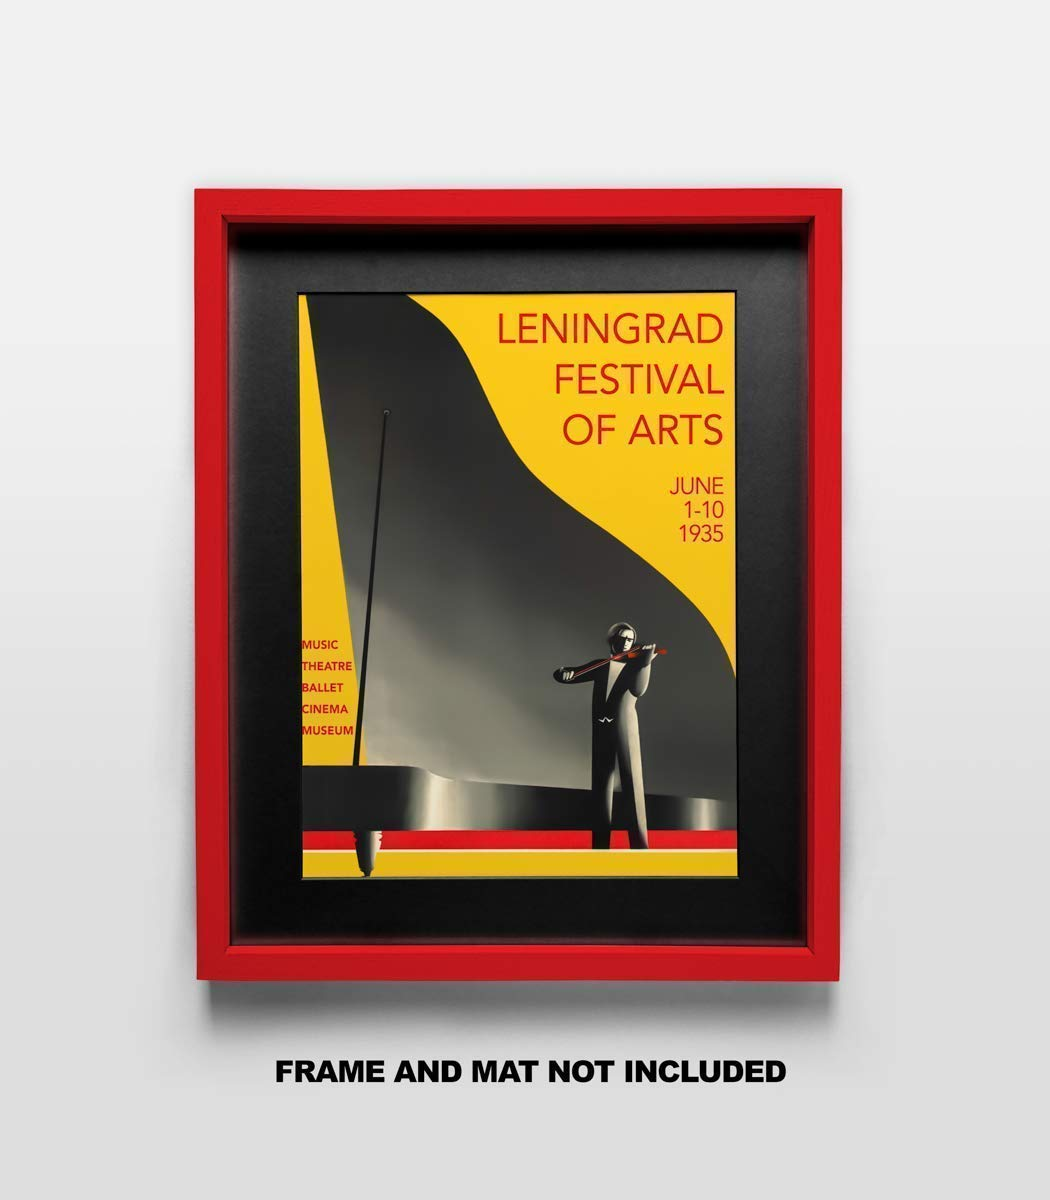 Dorm or Bedroom School Gift Under $20 Decor for the Home 11x14 Unframed Photo Wall Art- Great for Music Lovers Leningrad Festival of Arts Vintage Poster Beautifully Restored Fine Art Print